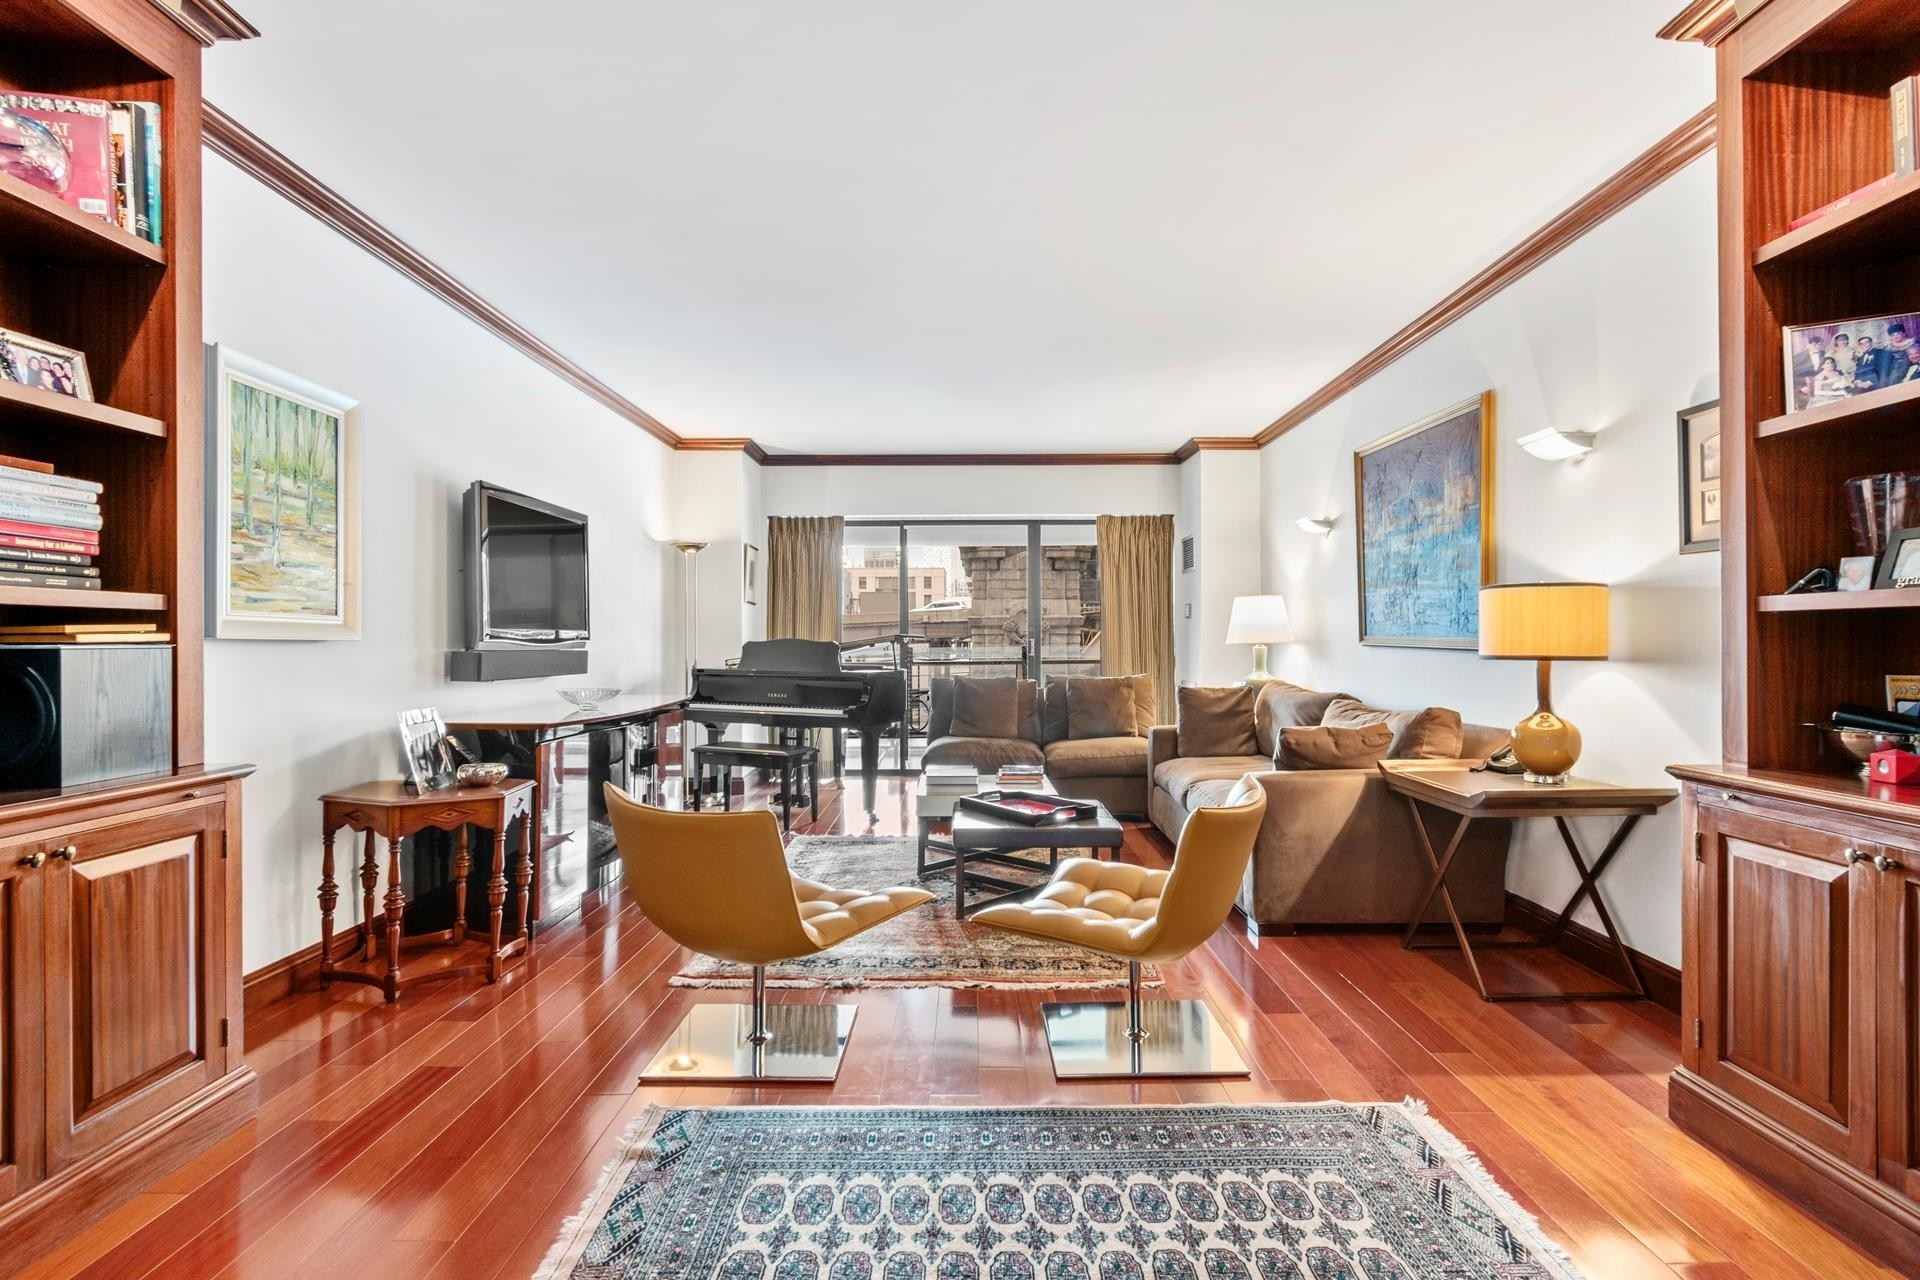 Co-op Properties for Sale at 425 East 58th St, 7A Sutton Place, New York, NY 10022